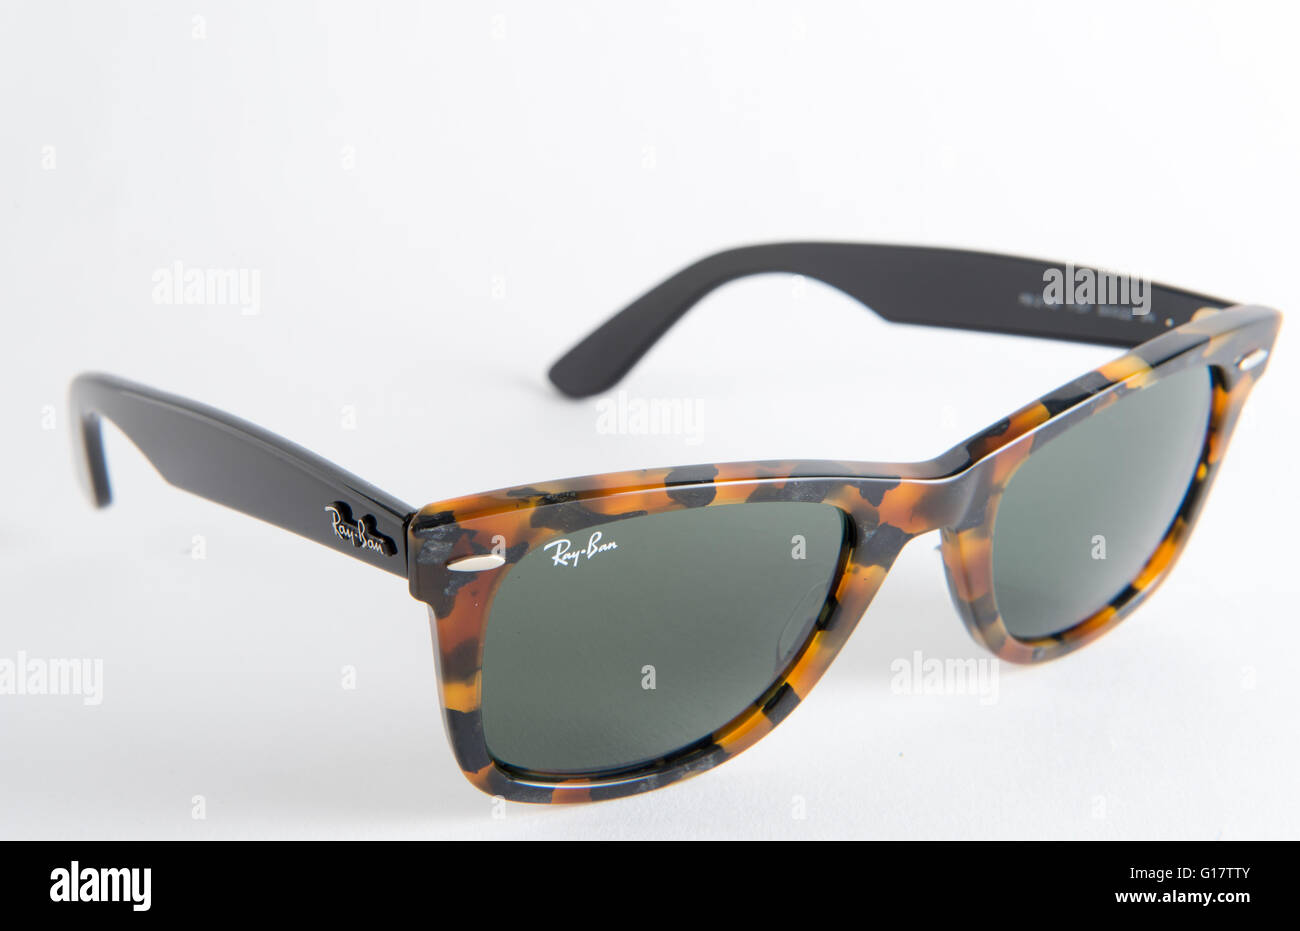 ceb2f4c27f Ray Ban Wayfarer Sunglasses Tortoise shell ORB2140-1157 Stock Photo ...